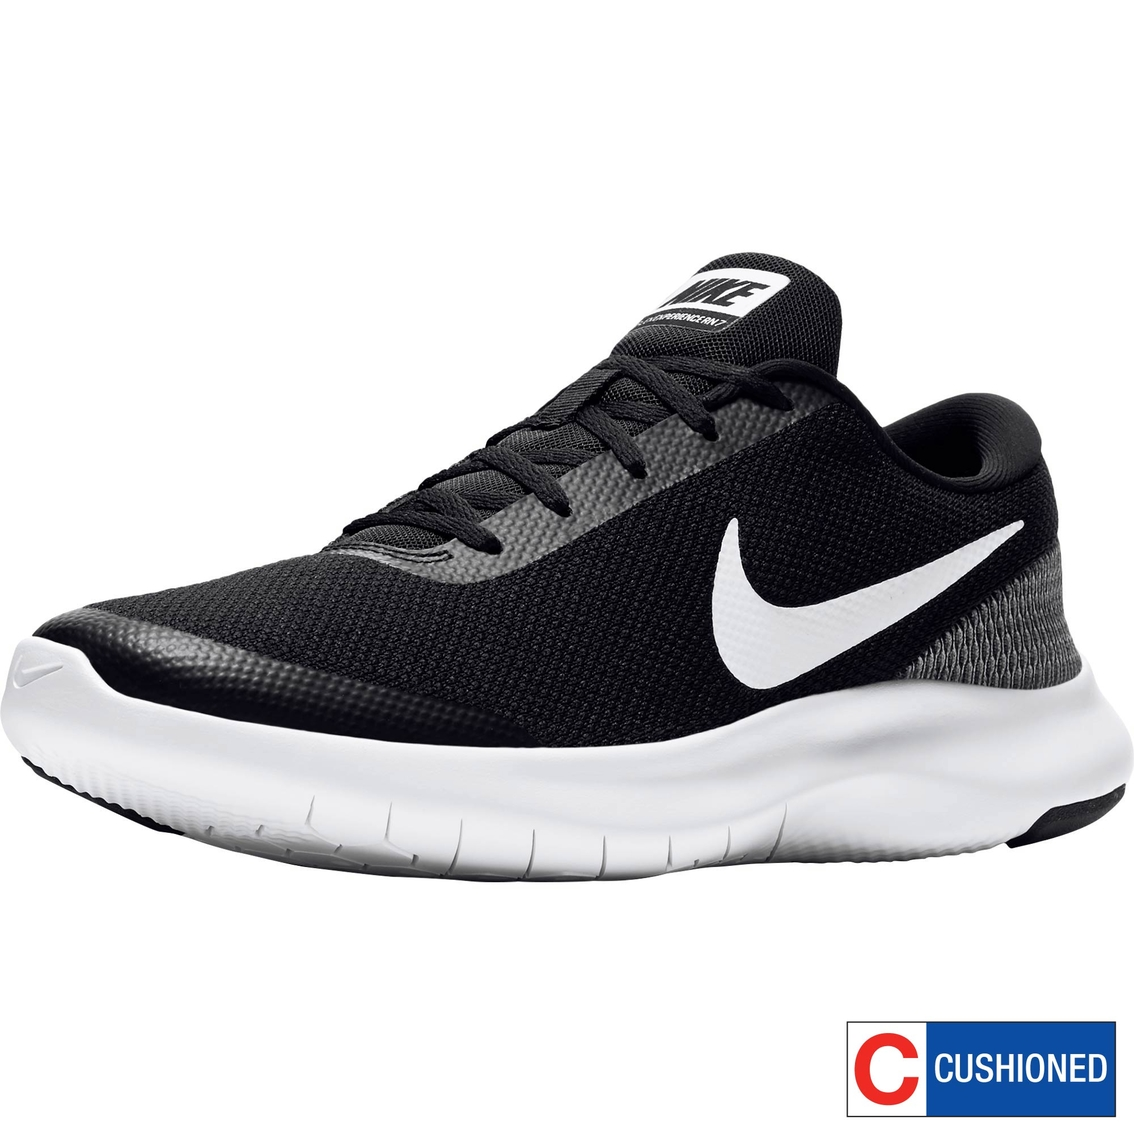 ee552a91405f Nike Men s Flex Experience Rn 7 Running Shoes